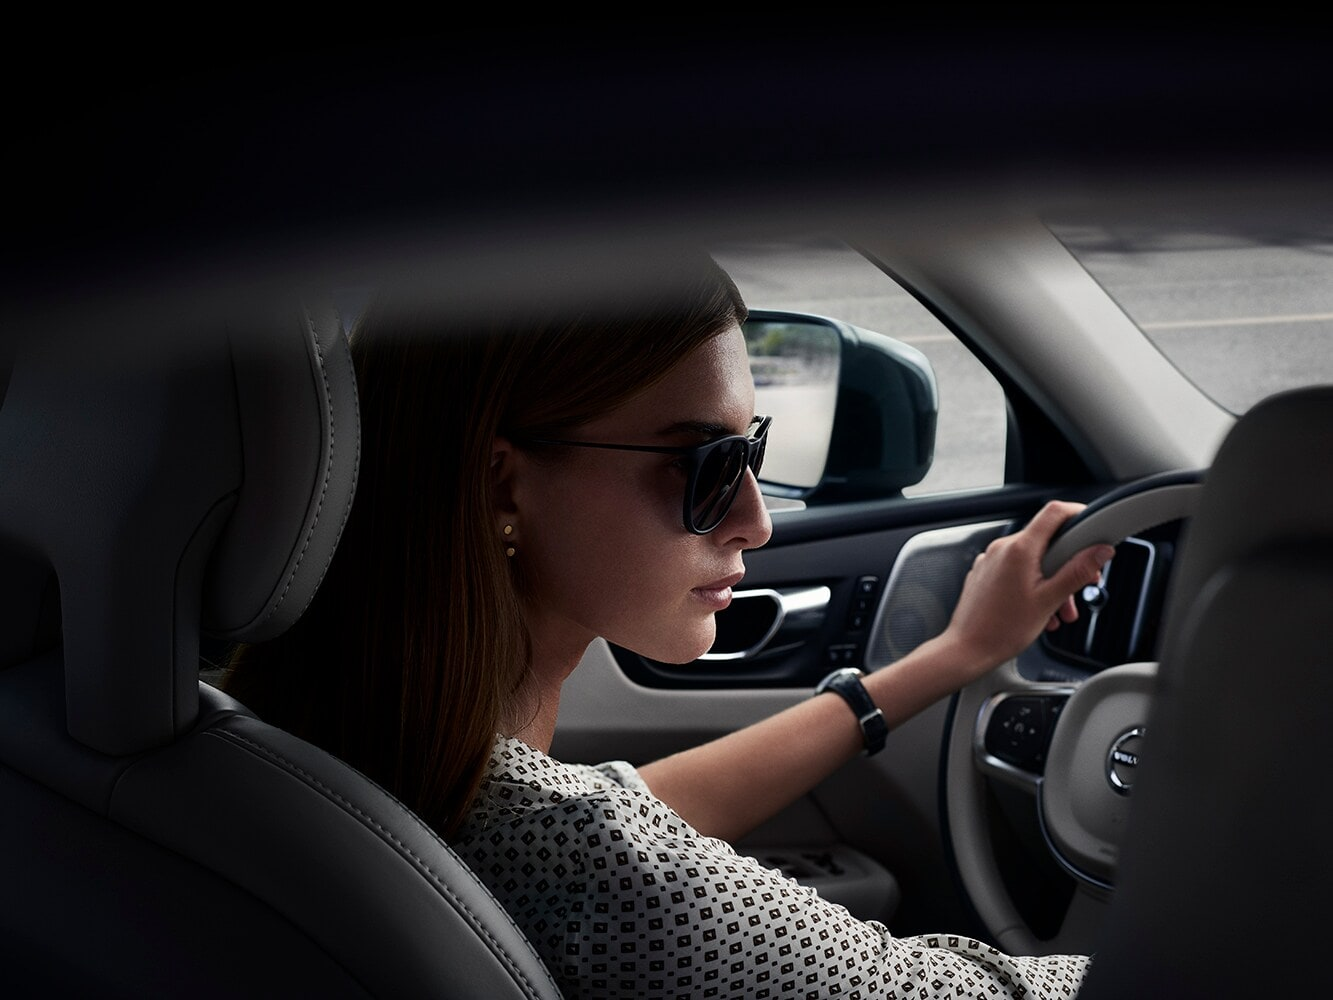 Candid portrait shot of a driver in a Volvo XC90